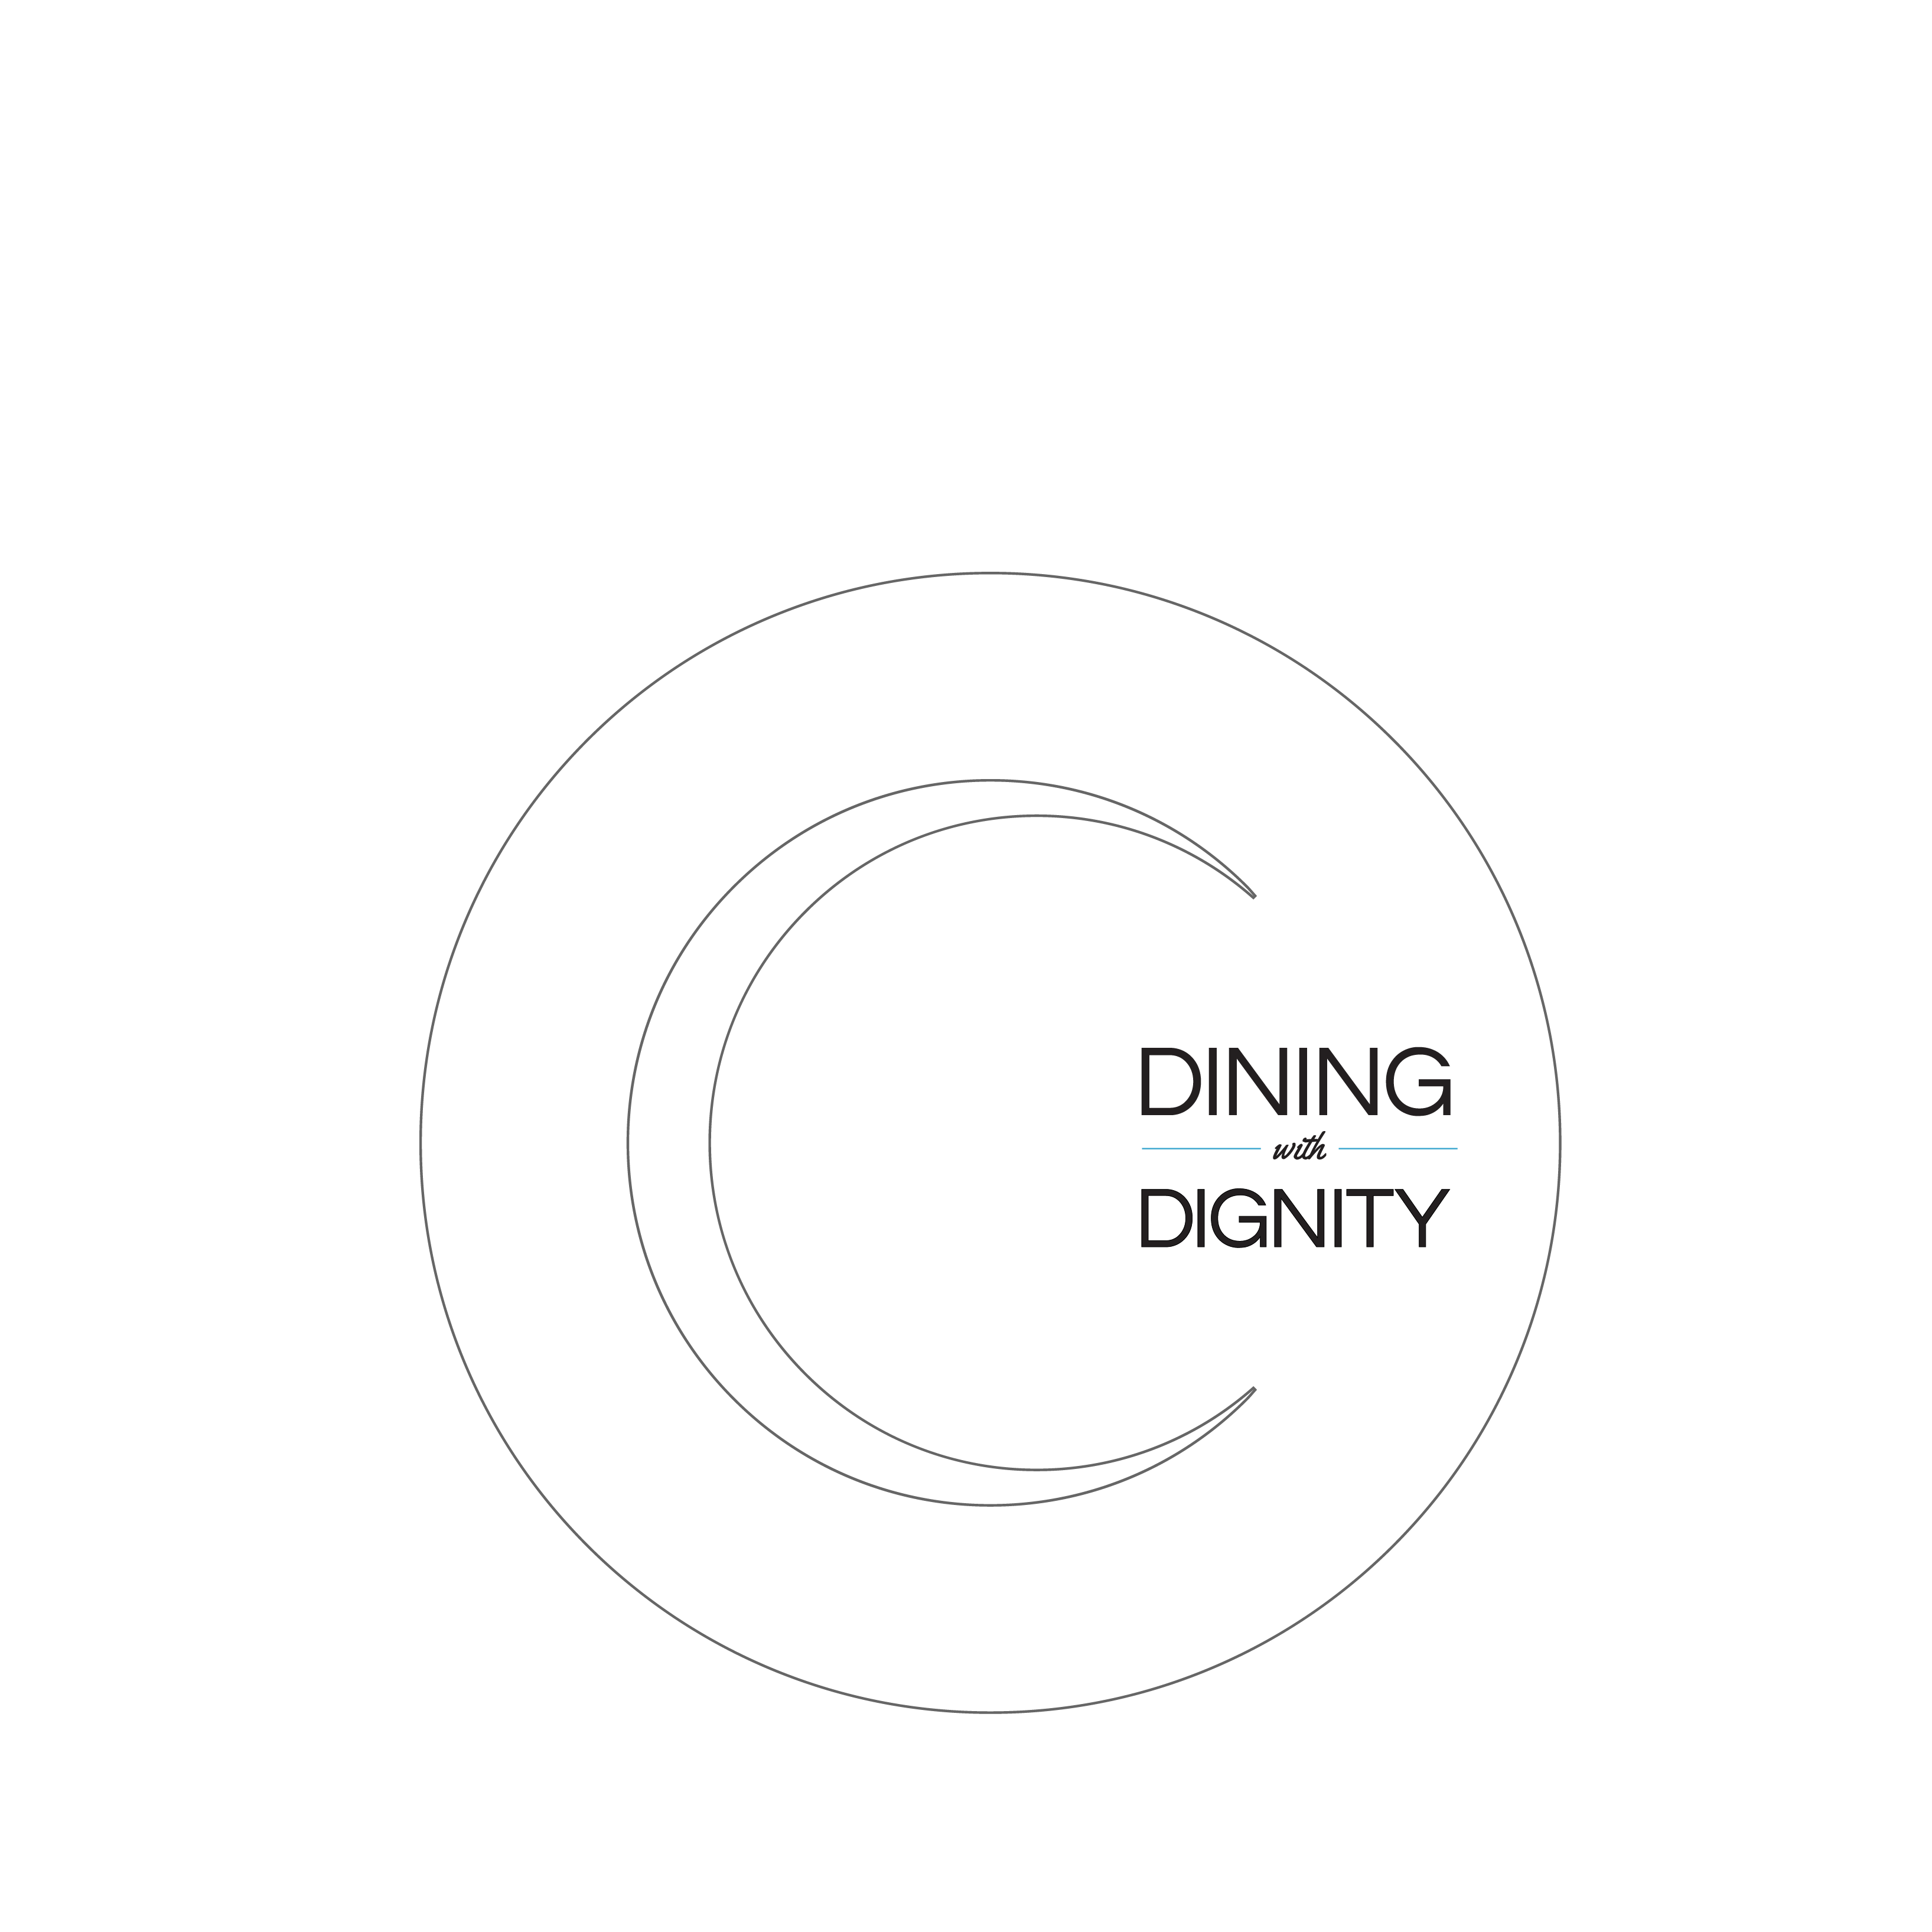 crescent city cafe